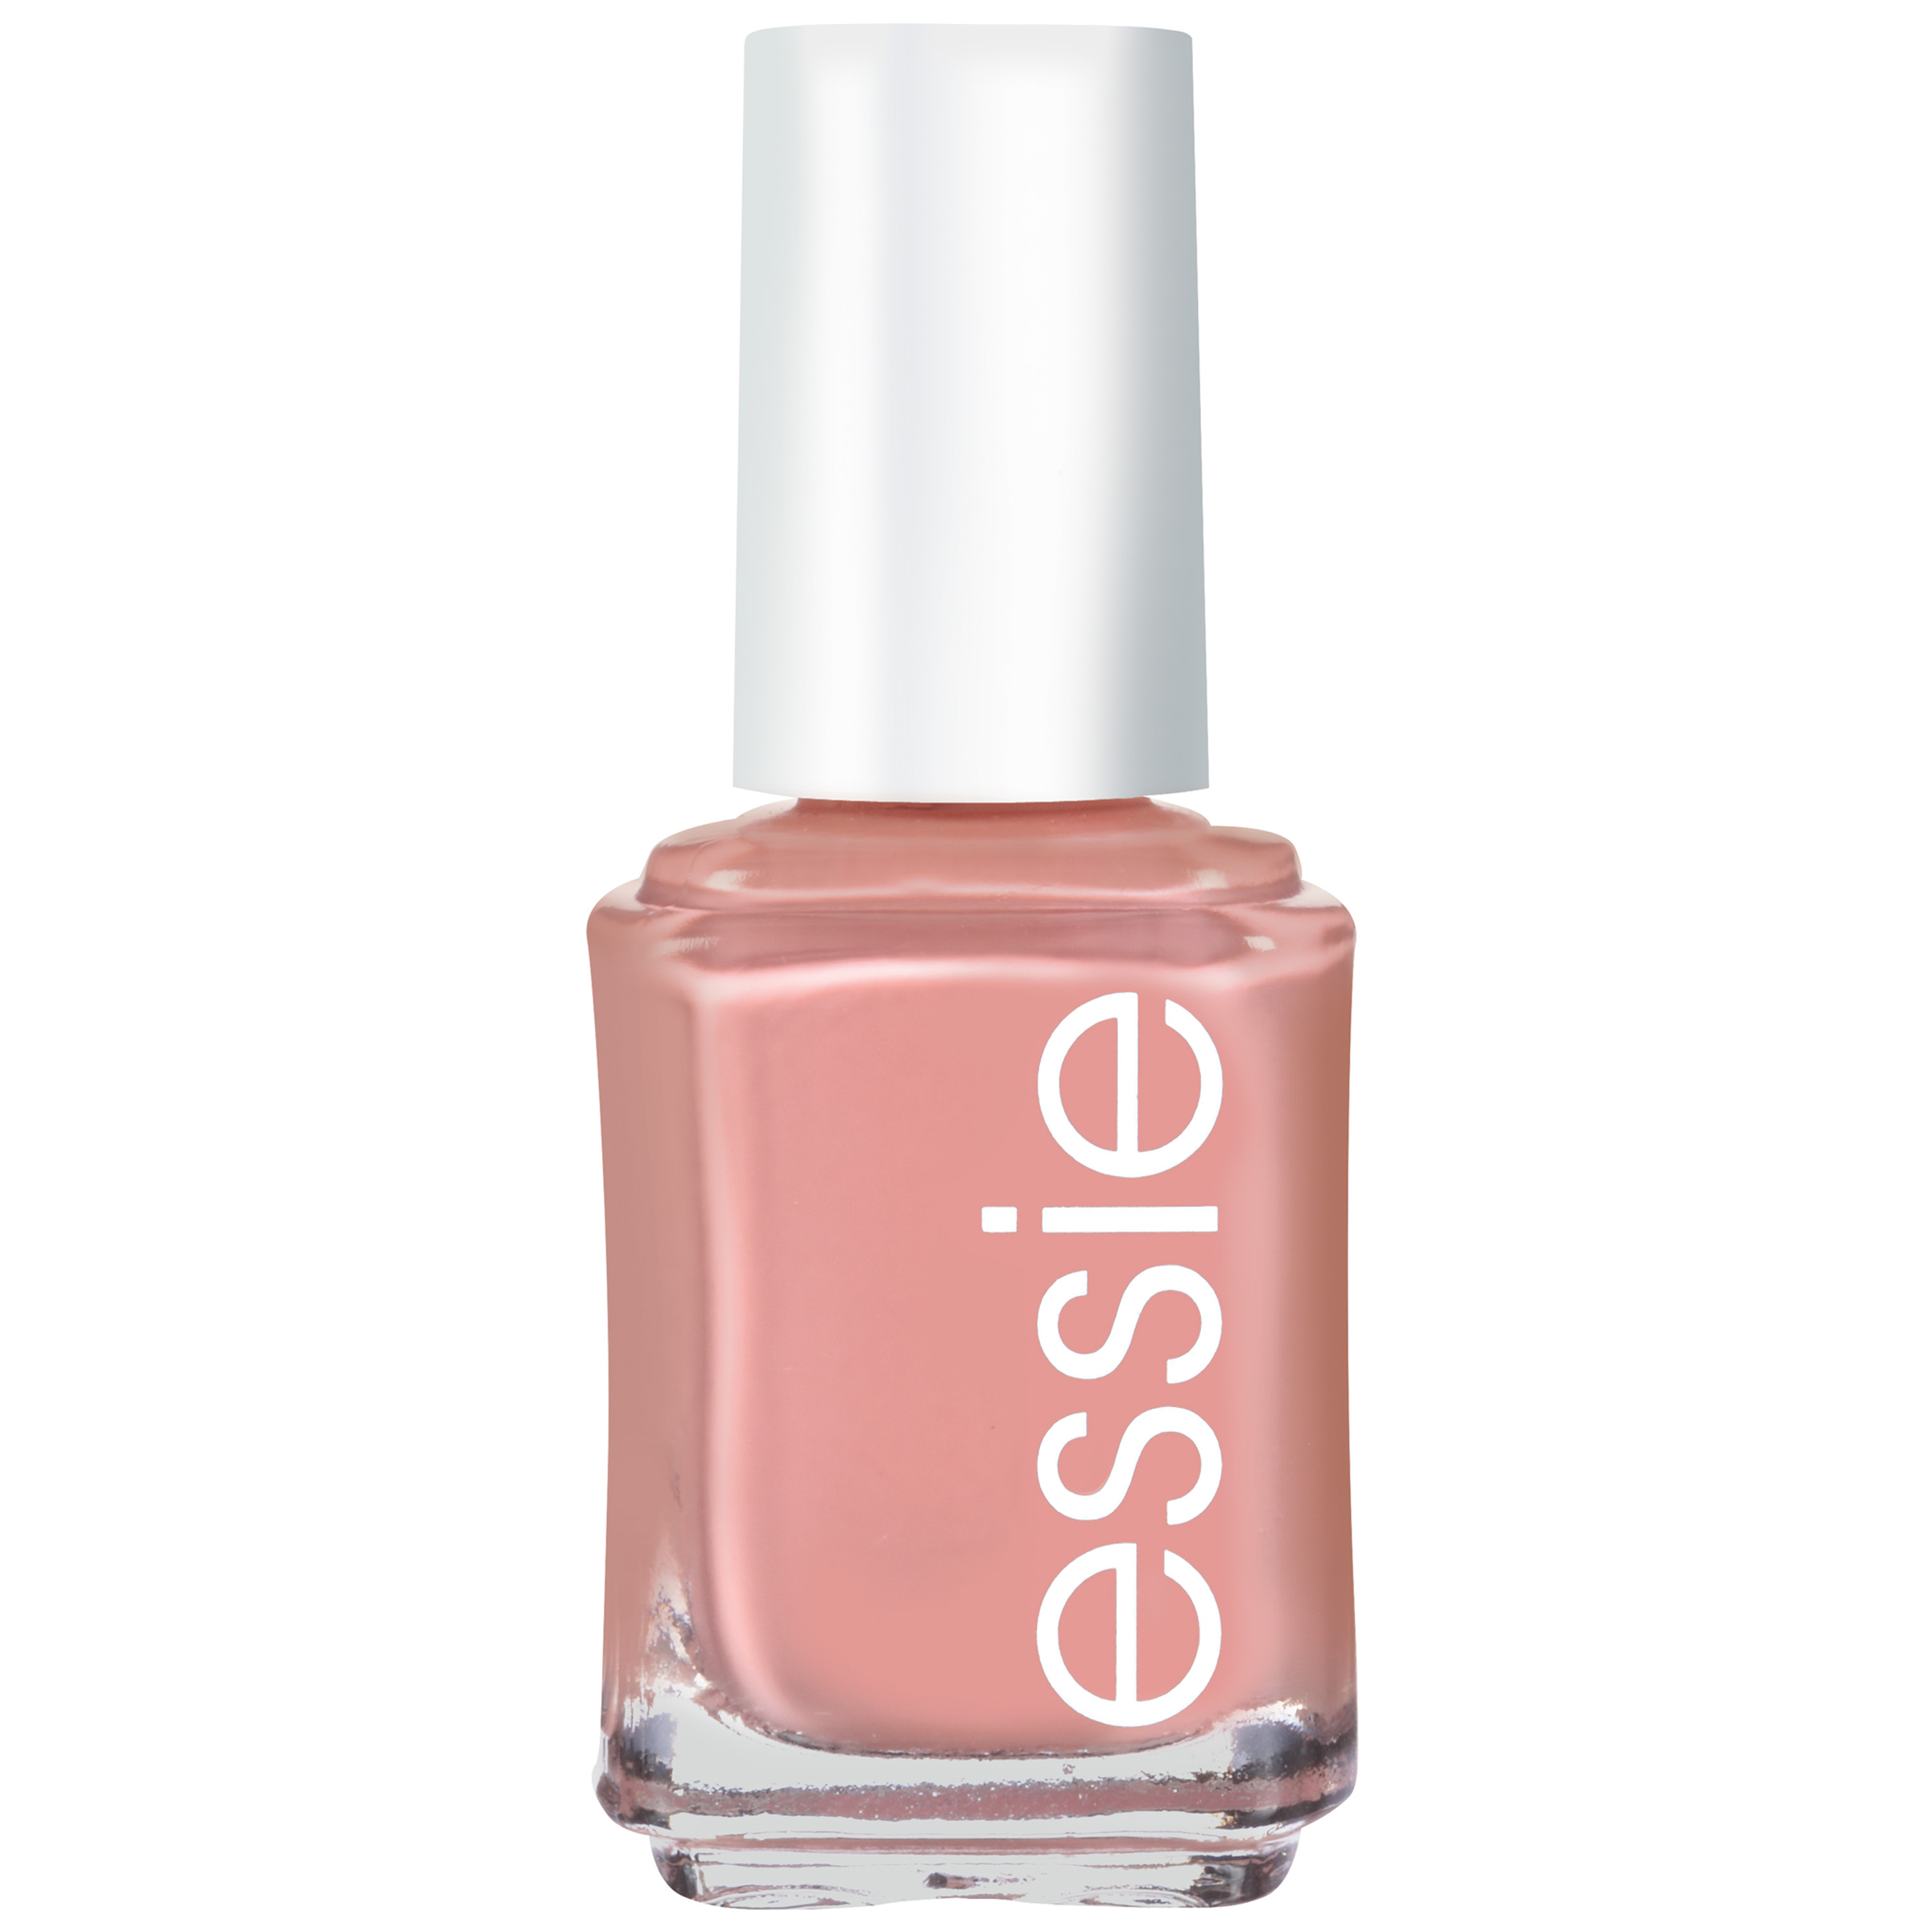 Essie Nail Polish, Eternal Optomist, 0.46 fl oz